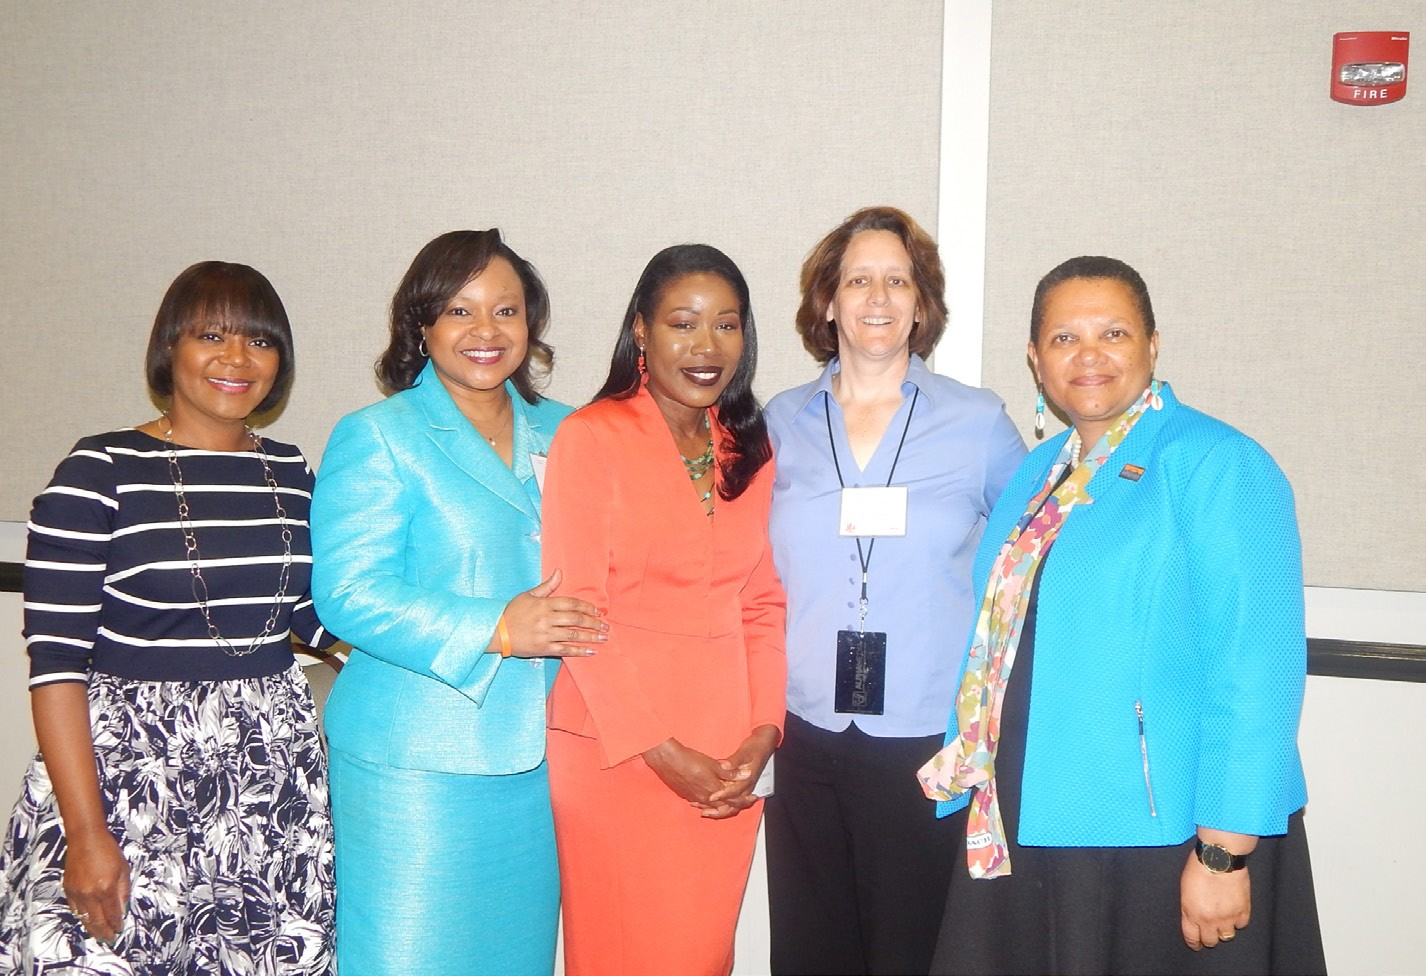 L-R Kim Gusby, Dawn Baker, Isabel Wilkerson, Claire Beverly and Dr. Cheryl Dozier